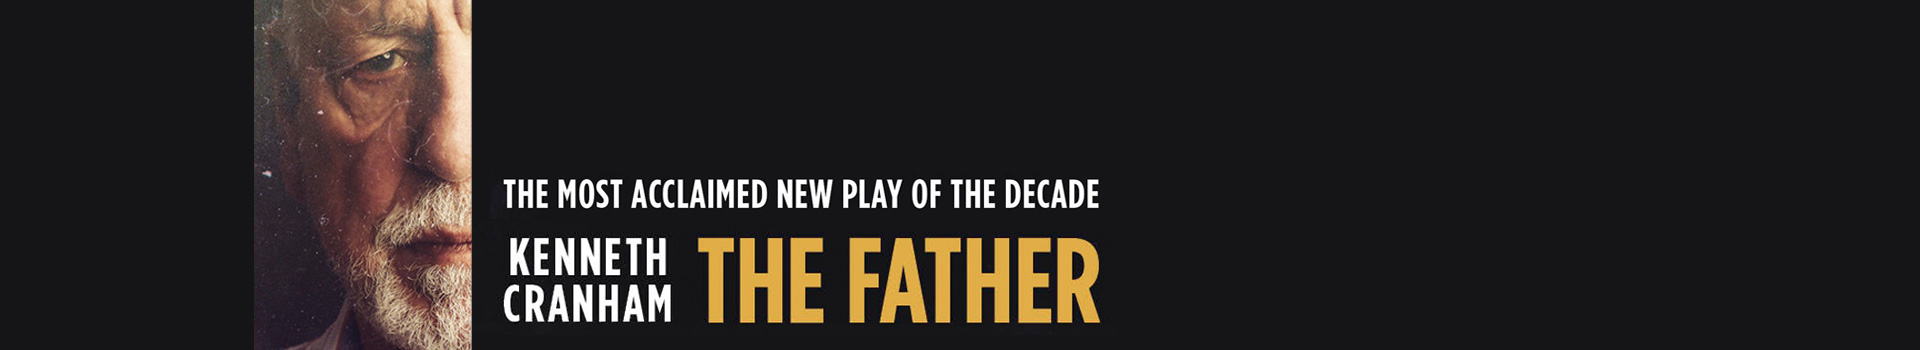 The Father banner image